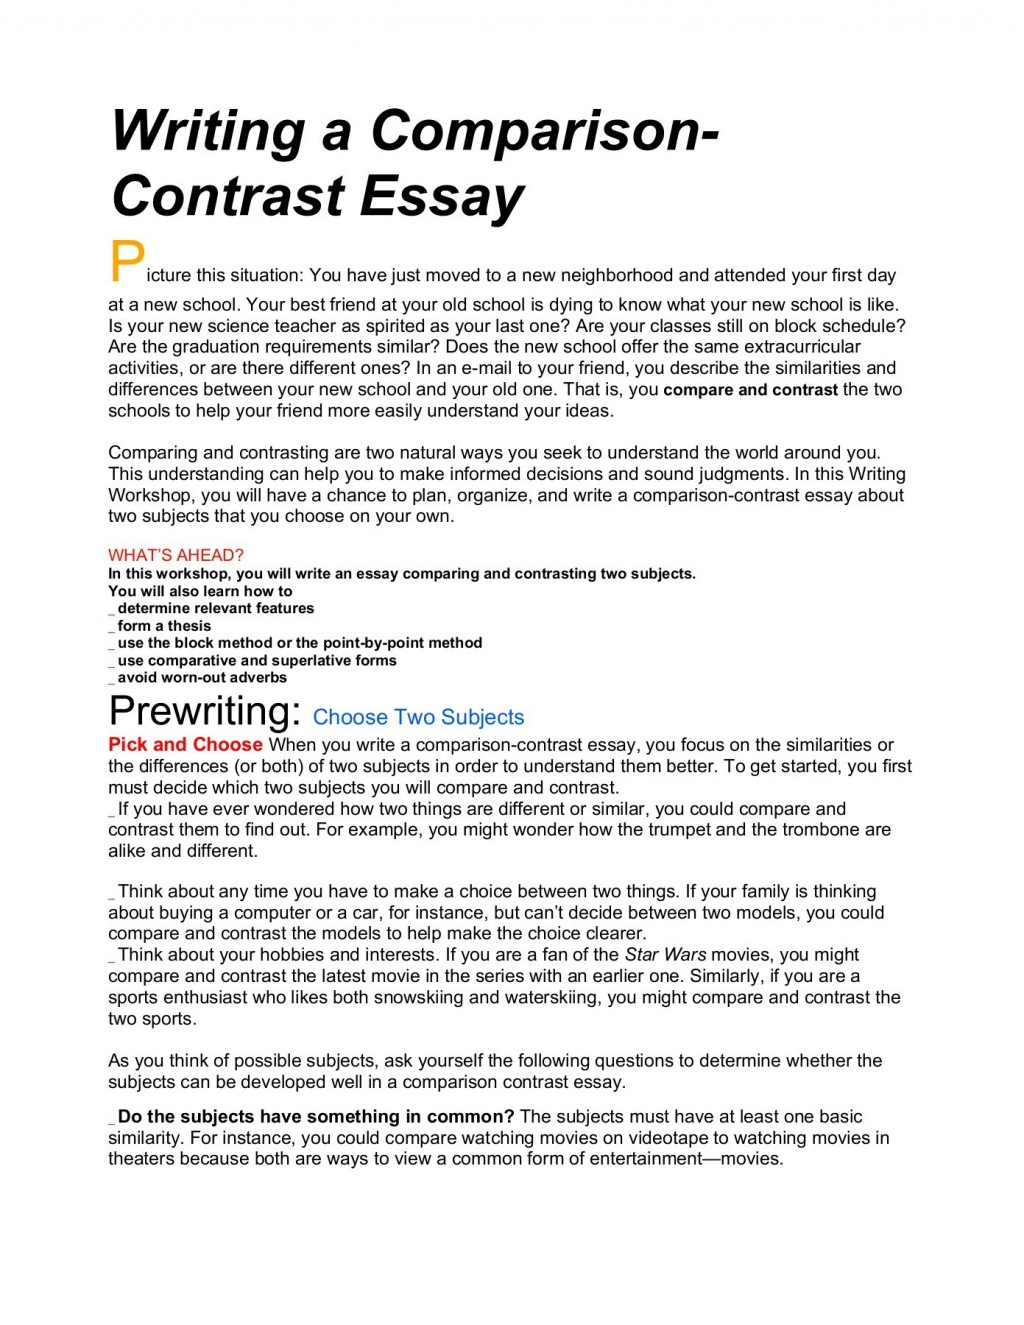 010 How To Write Compare And Contrast Essay Outstanding A Good Conclusion Paragraph For On Two Poems Thesis Driven Large